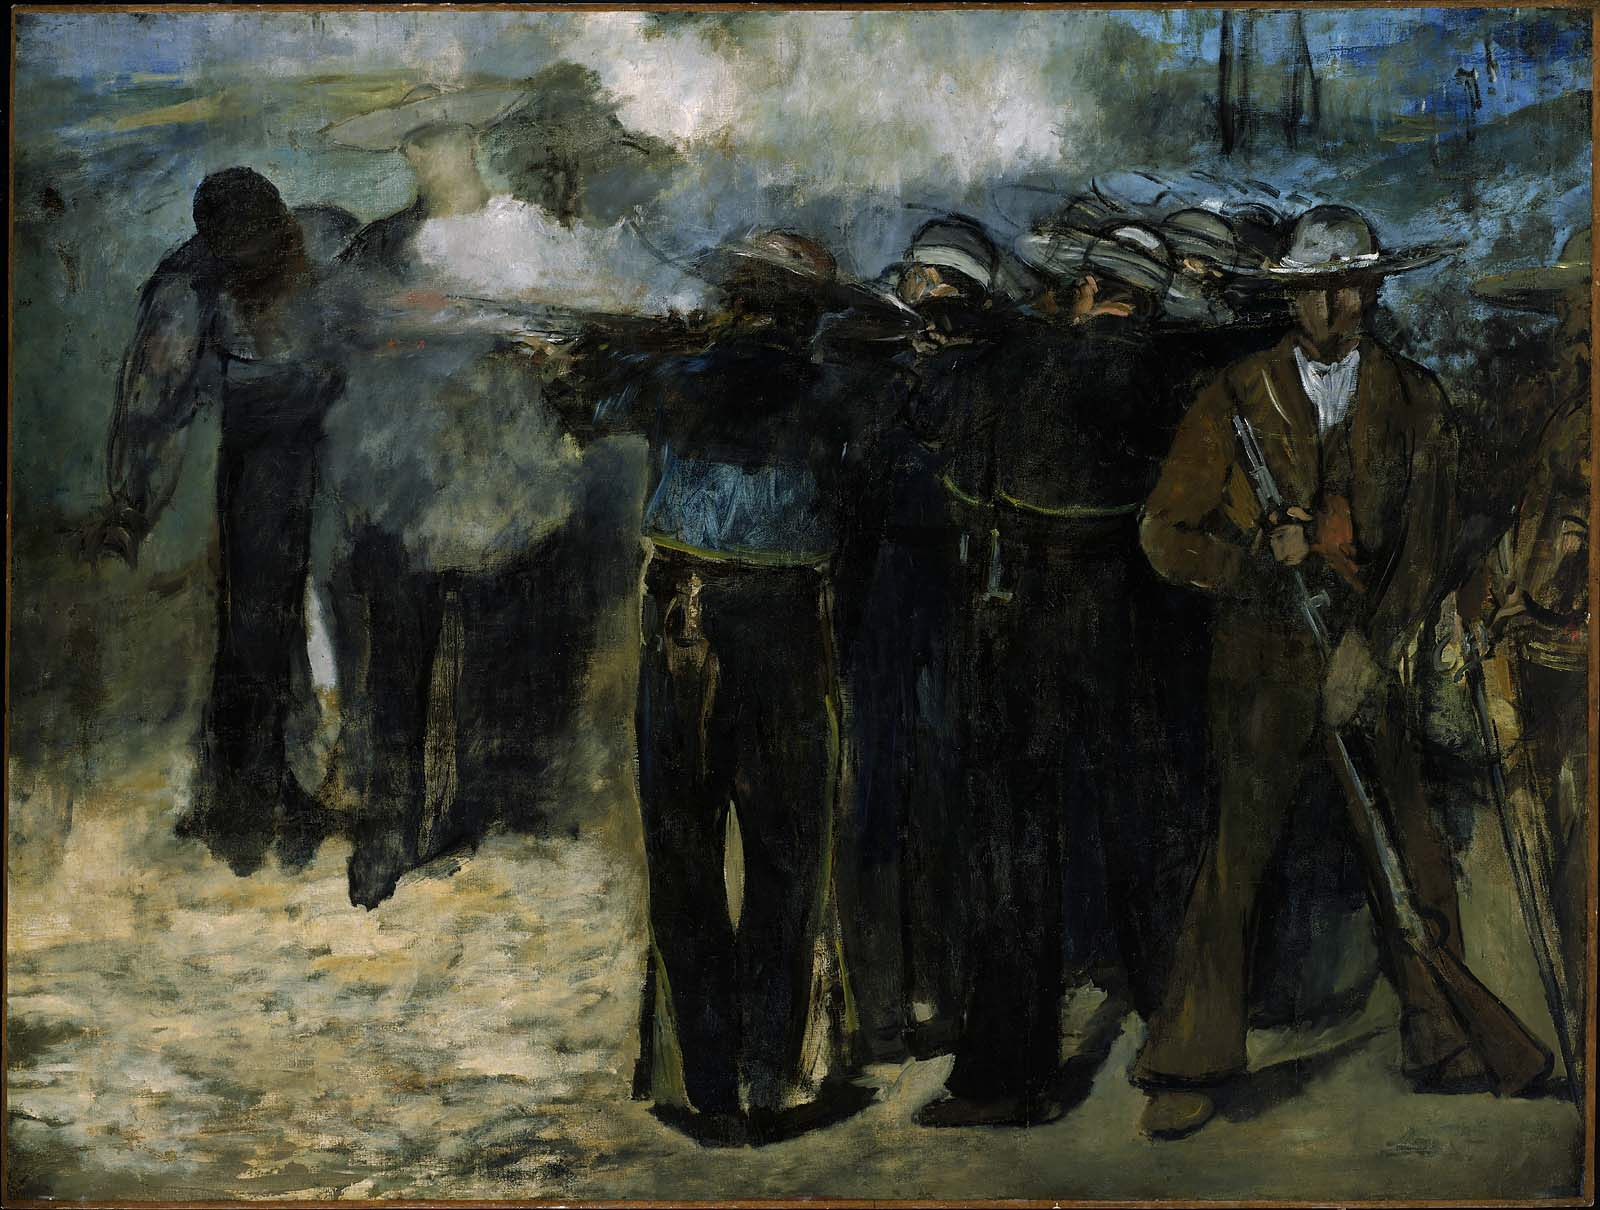 https://upload.wikimedia.org/wikipedia/commons/9/9b/Manet%2C_Edouard_-_The_Execution_of_Emperor_Maximilian%2C_1867.jpg?uselang=ru